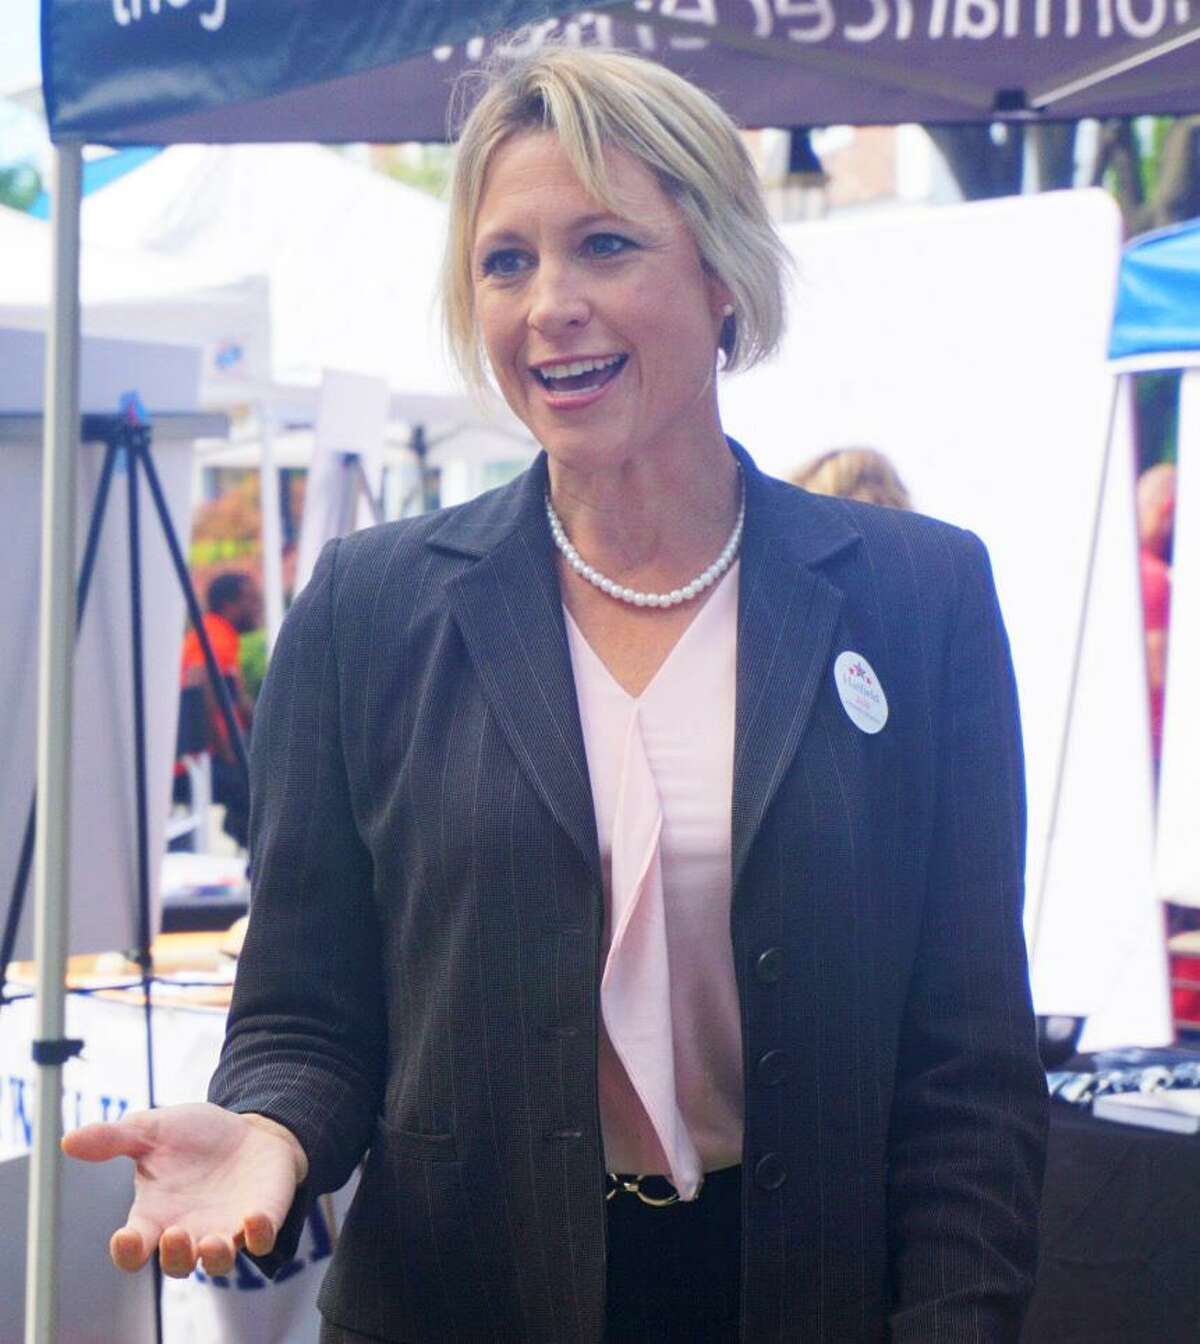 Sue Hatfield, Republican endorsed candidate for attorney general, went to the Ridgefield Sidewalk Sales on Saturday July 21, 2018 to meet with voters ahead of the August primary.